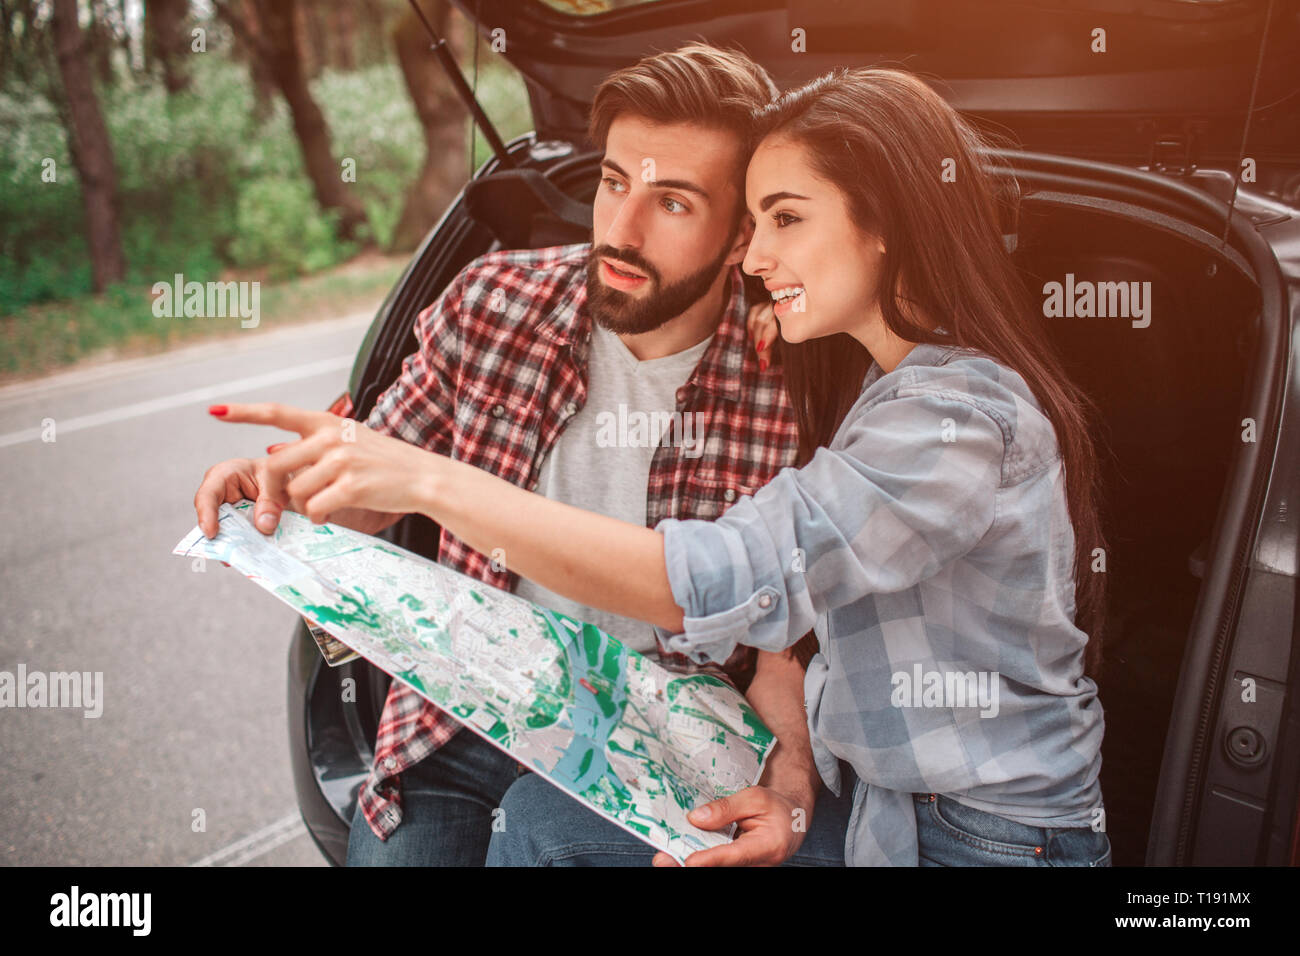 Attractive girl is sitting with her boyfriend in car's trunk and pointing straight forward. She is smiling. Guy is holding a map and looking straight  - Stock Image